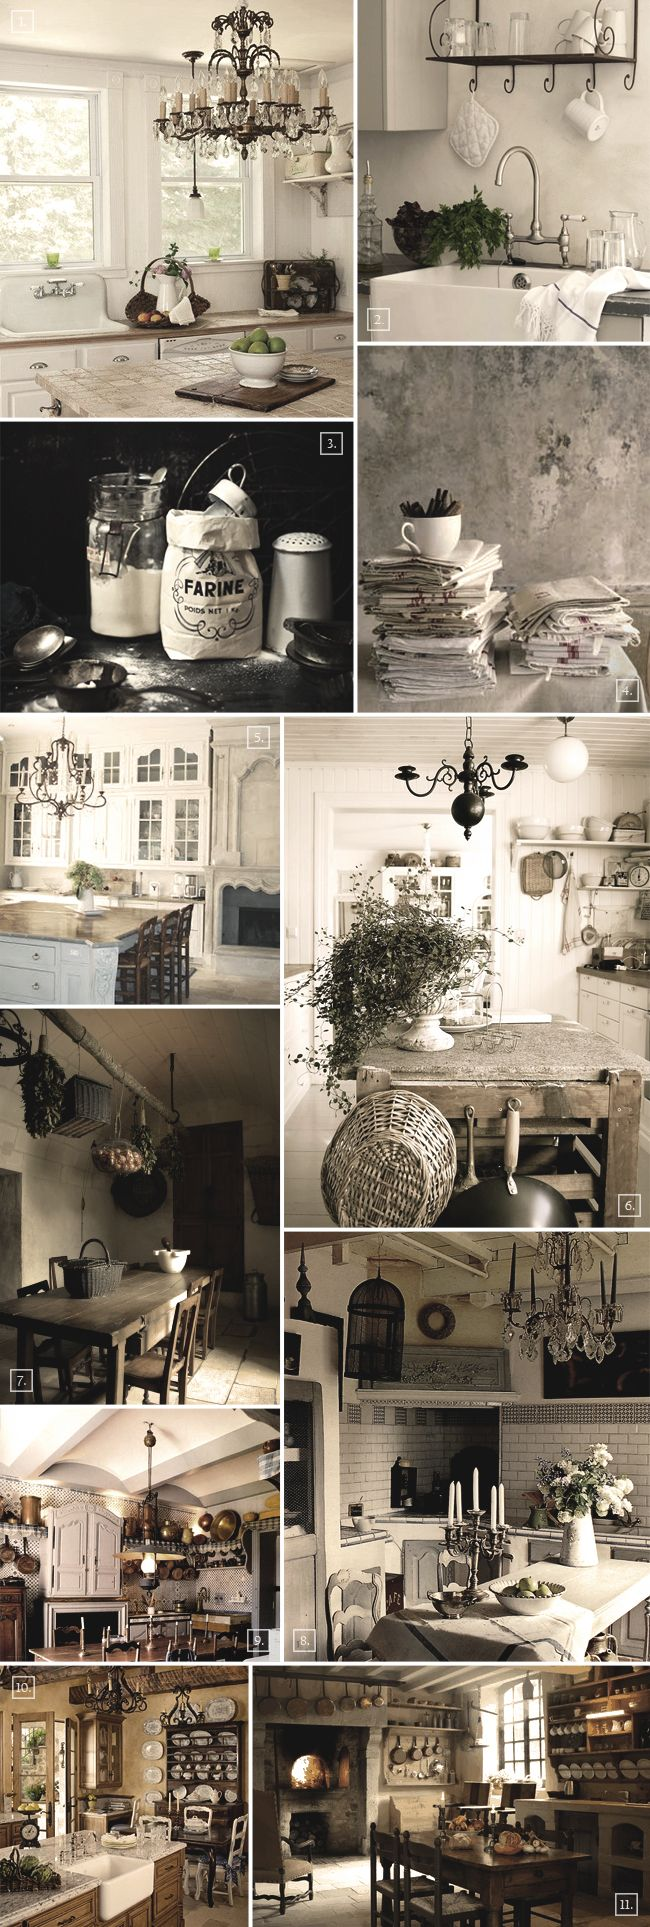 Decor ideas for a French styled kitchen *details* black, cream, grey, cast iron styling and cream painted metal